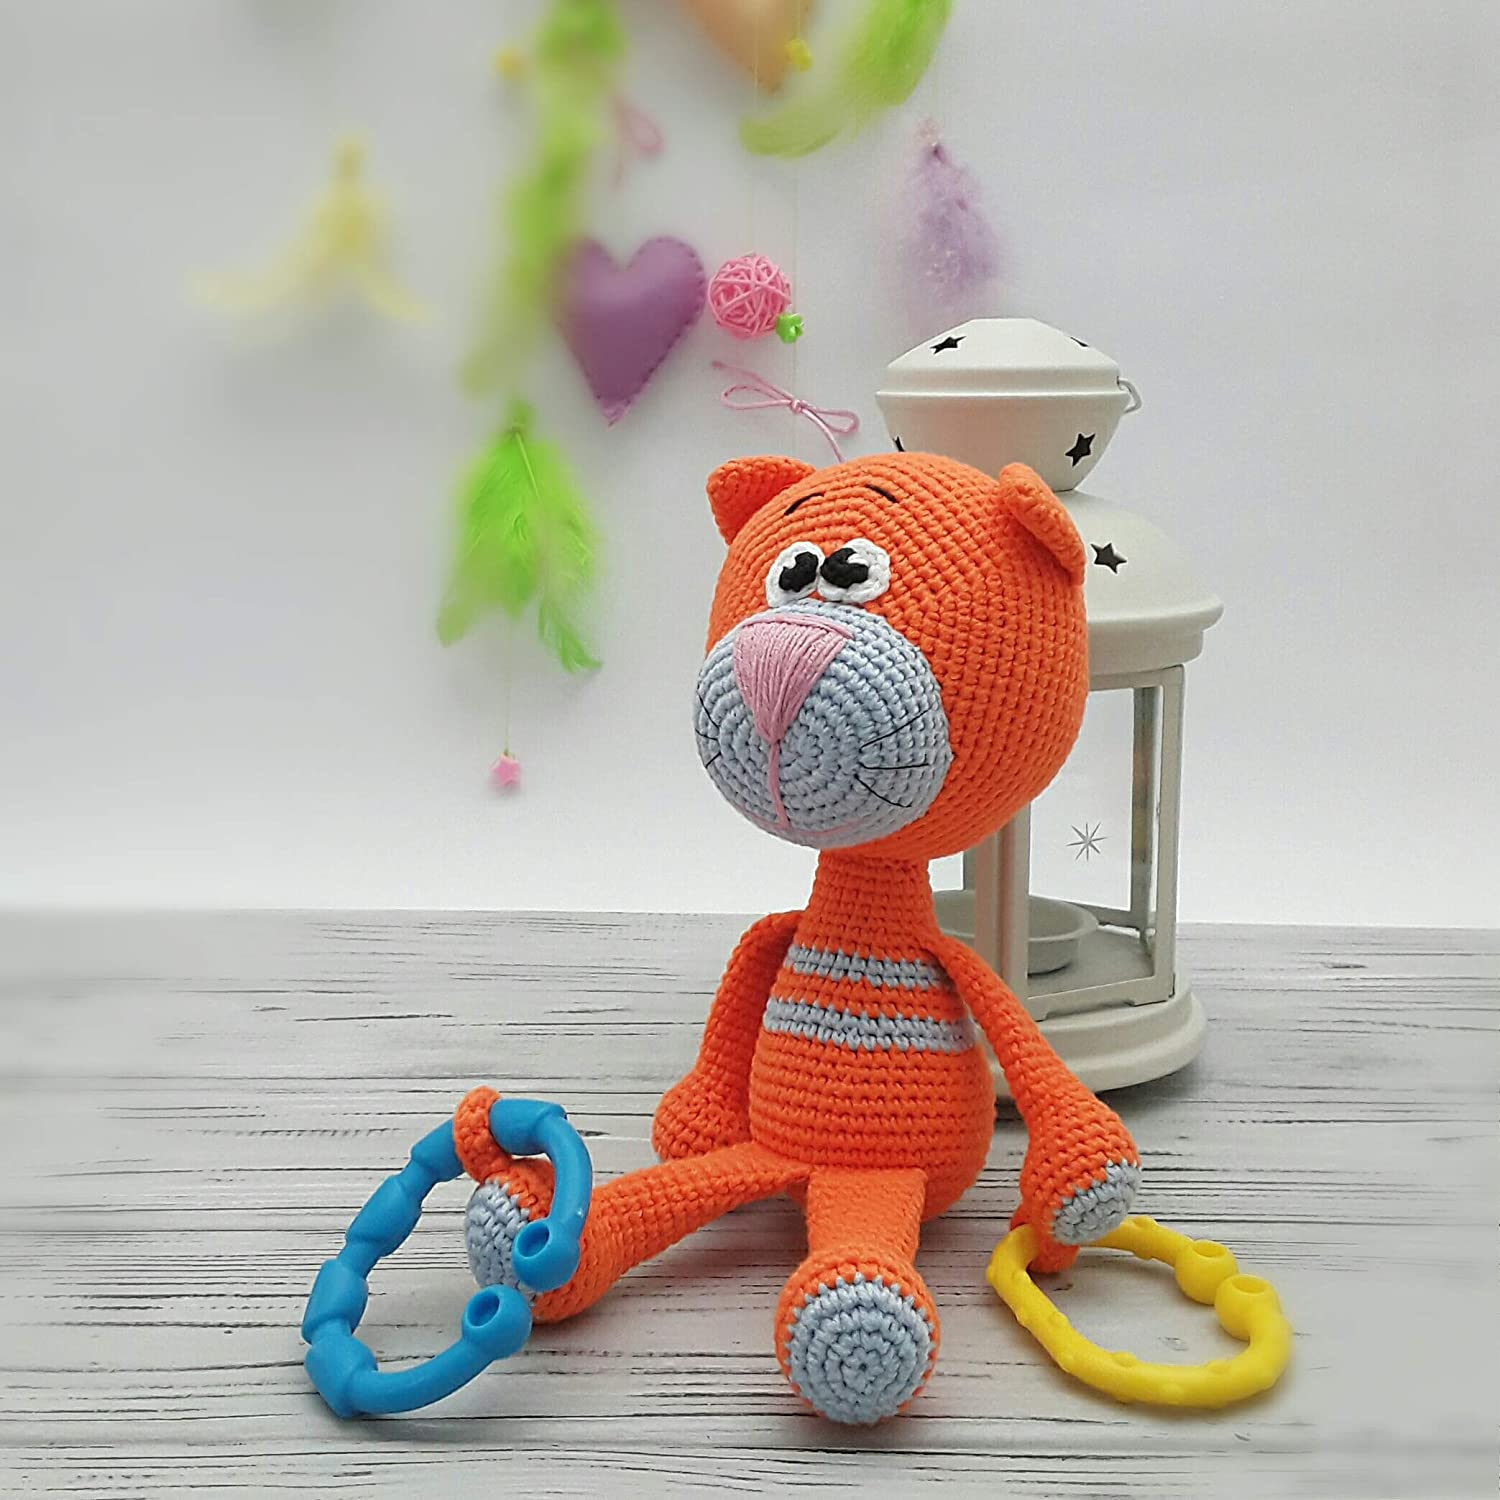 Free Cat Crochet Pattern - Red Ted Art - Make crafting with kids ... | 1500x1500